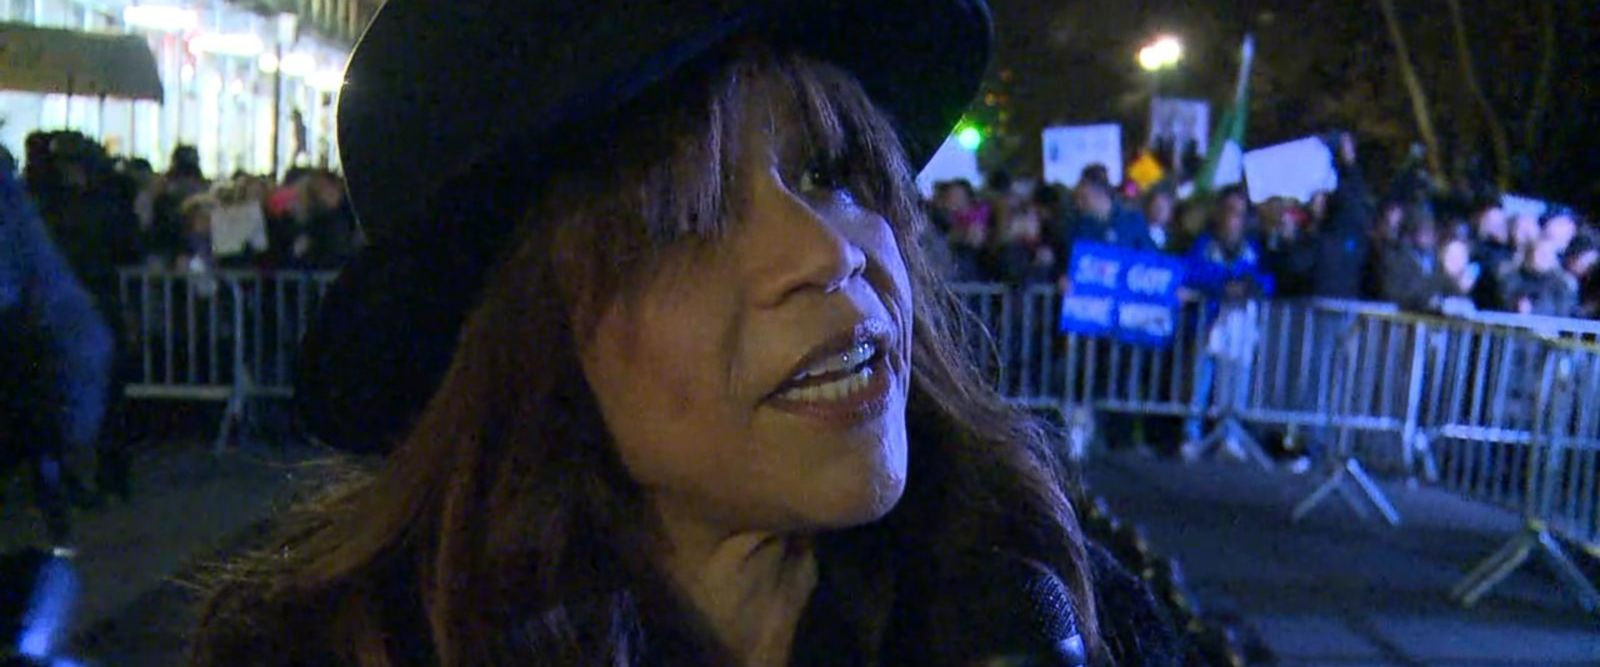 VIDEO: Rosie Perez Joins Protest Outside Trump Hotel On Eve of Inauguration